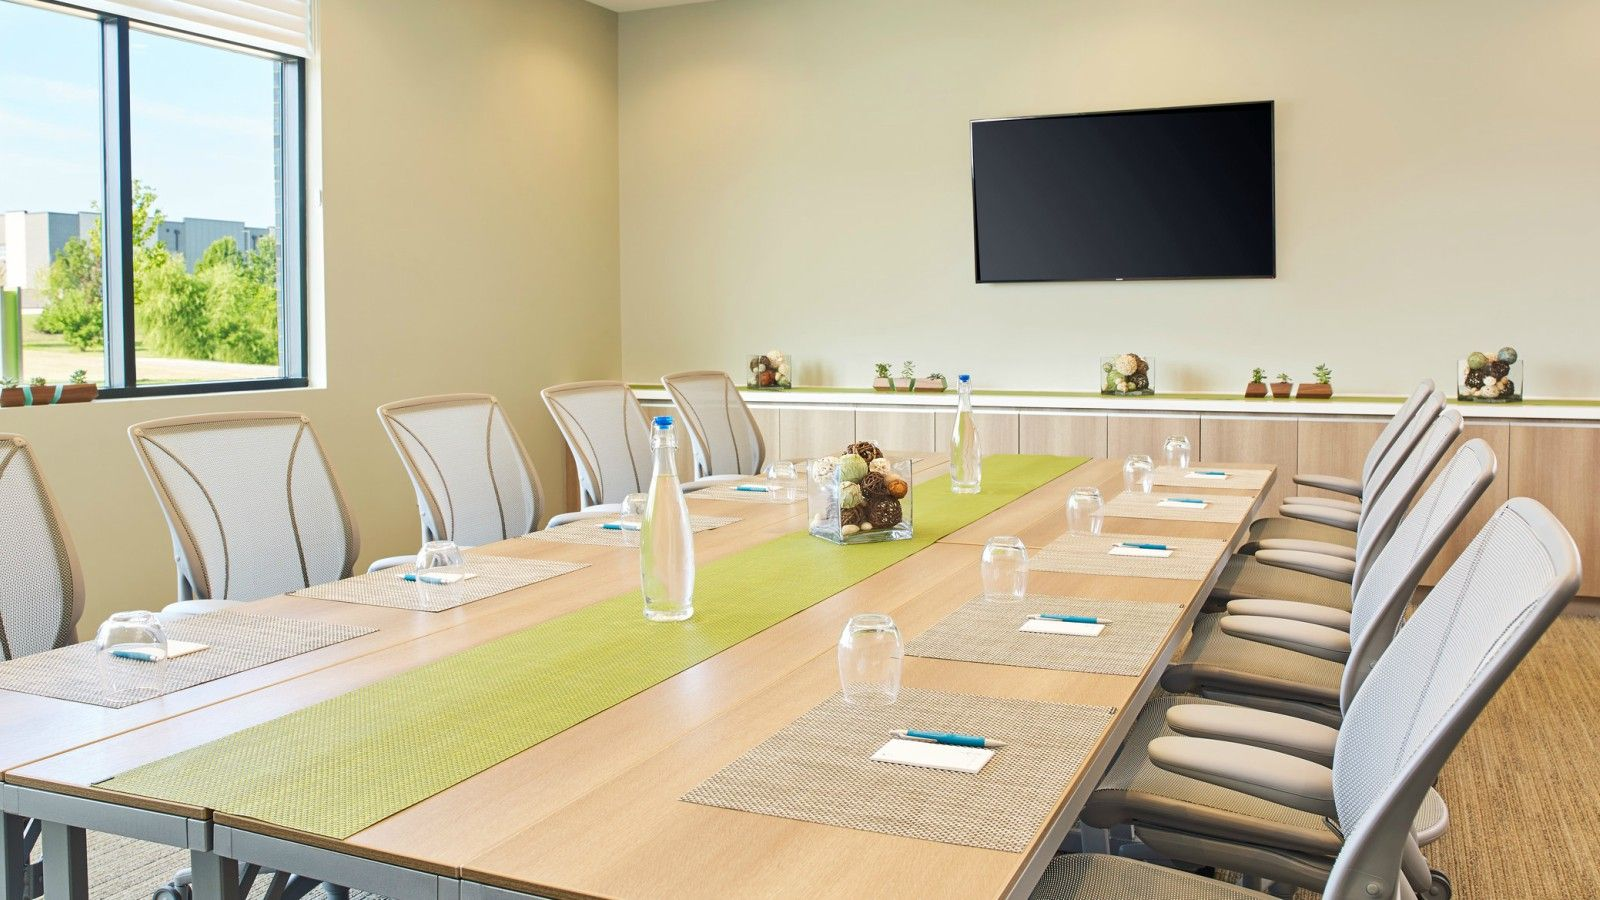 Des Moines Meetings - Boardroom